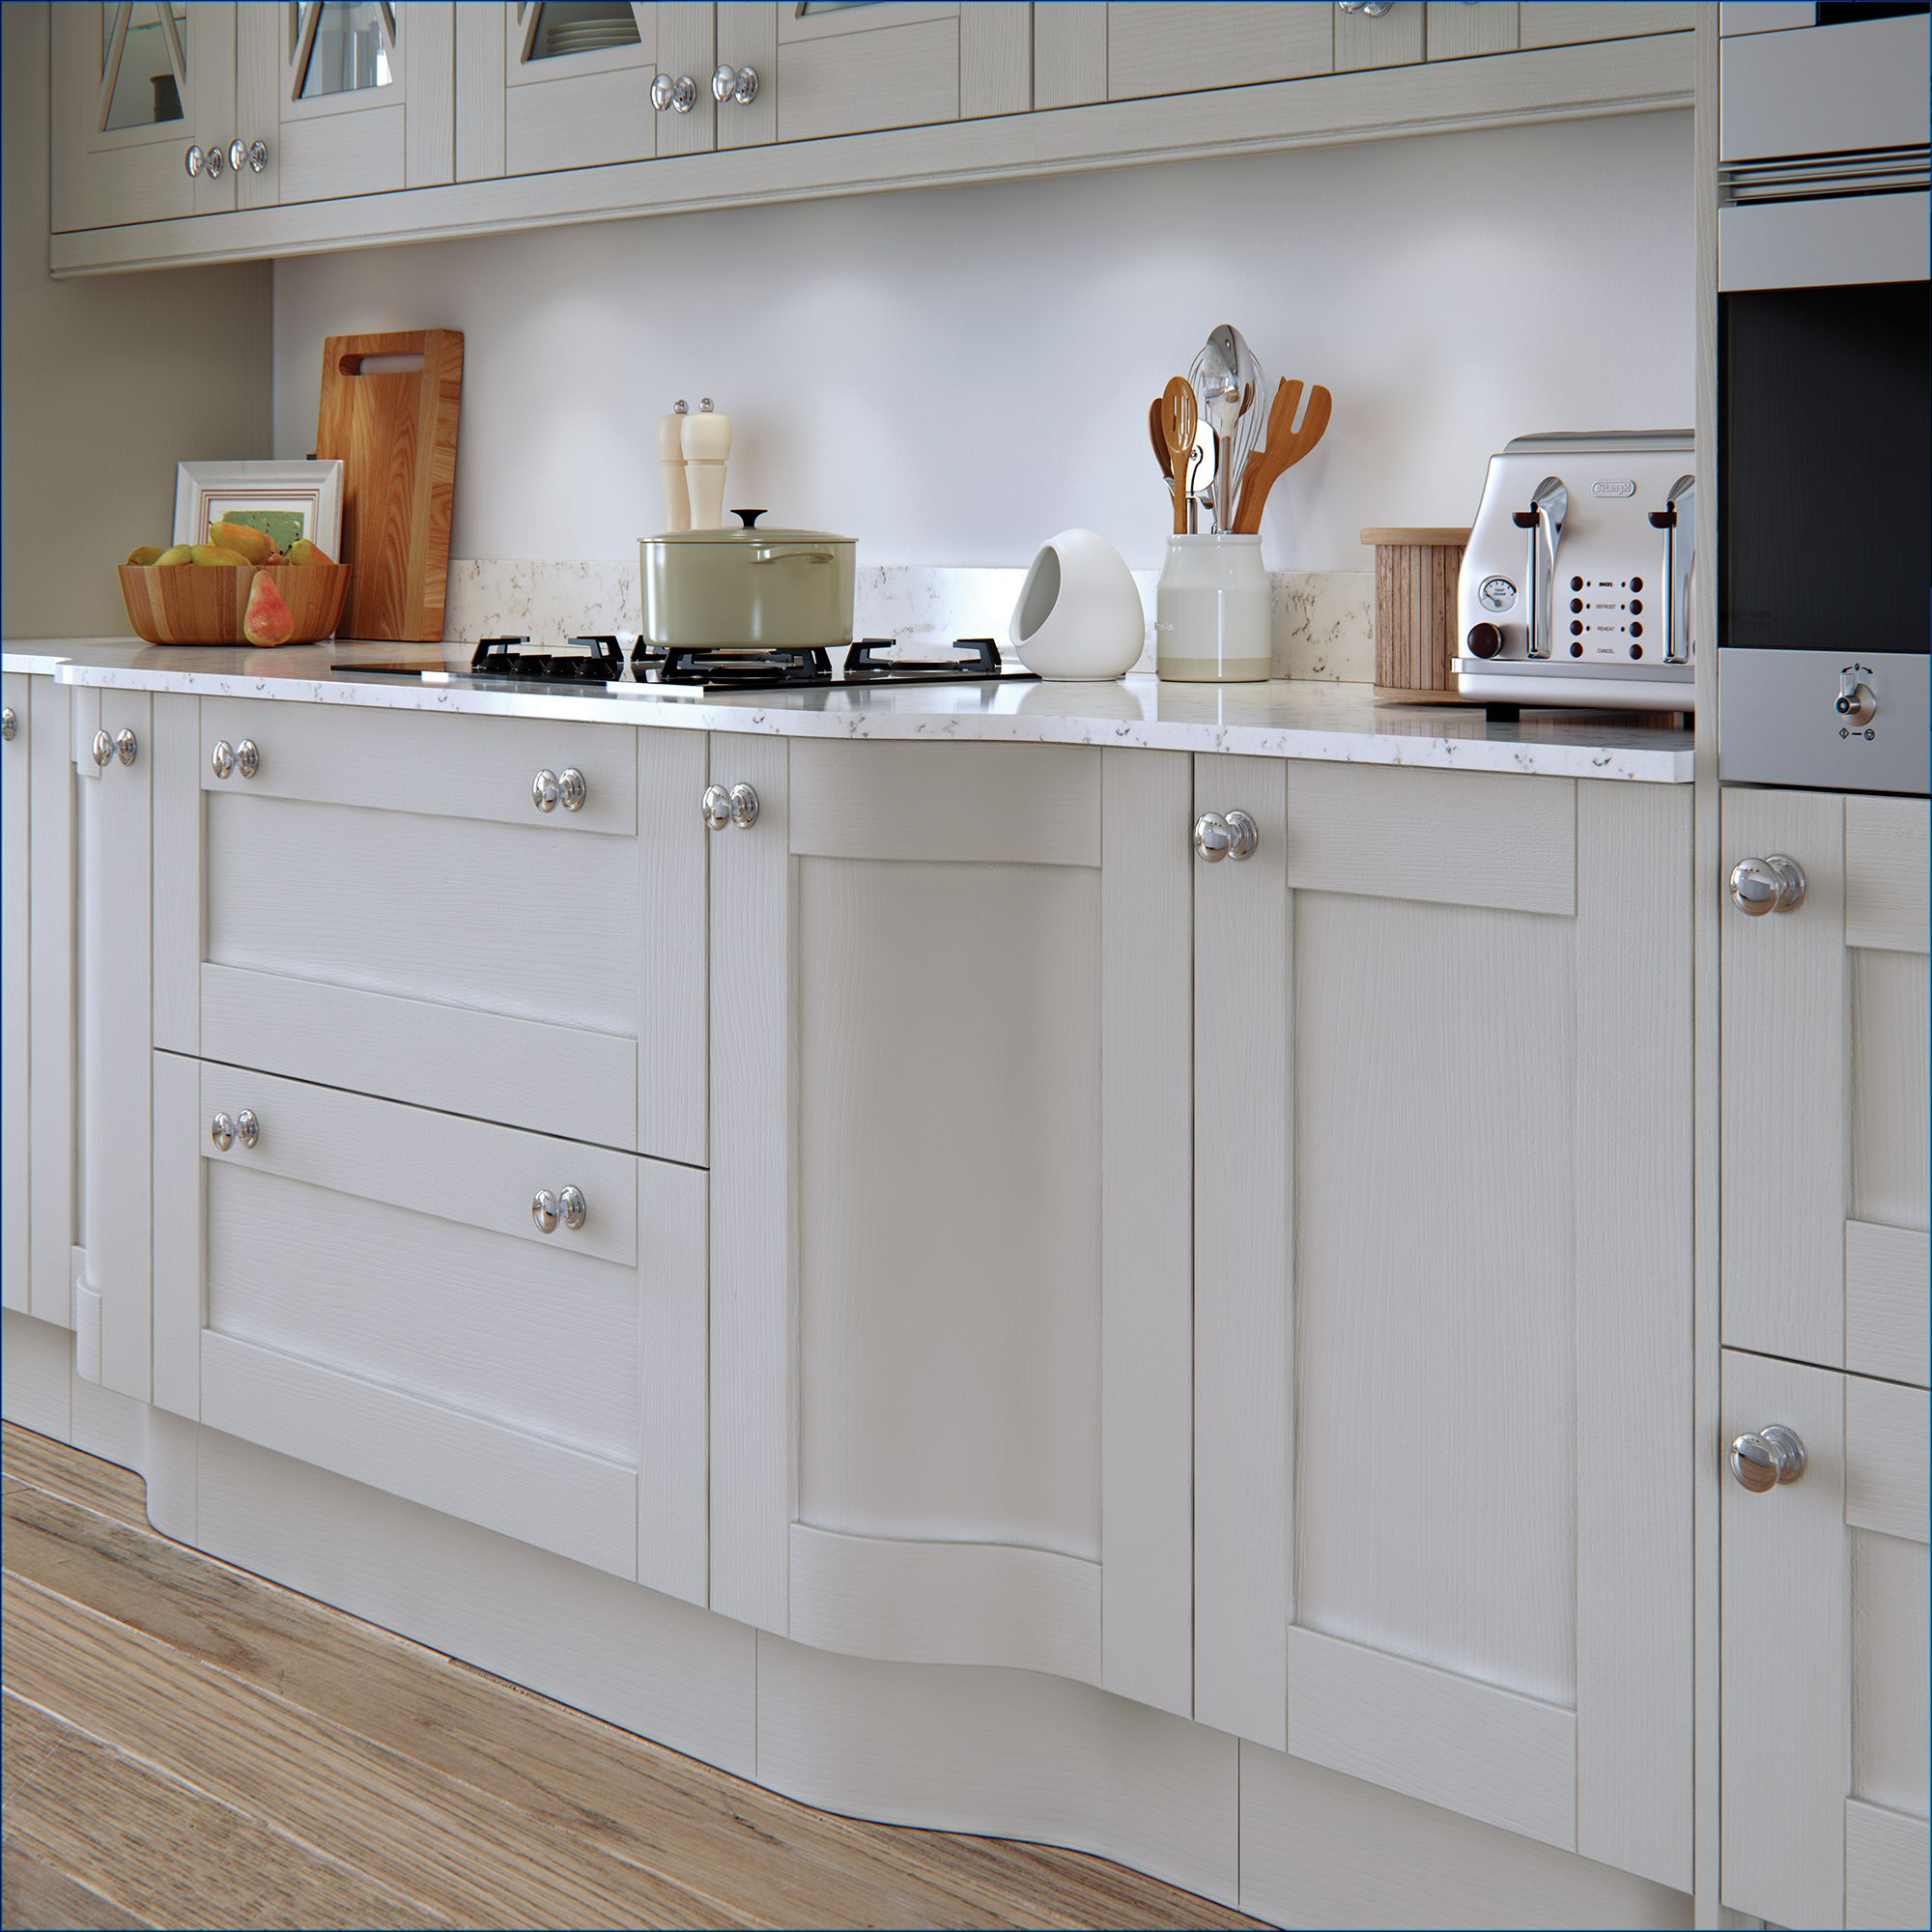 Best Madison Shaker Kitchen In Painted Light Grey Shaker 400 x 300